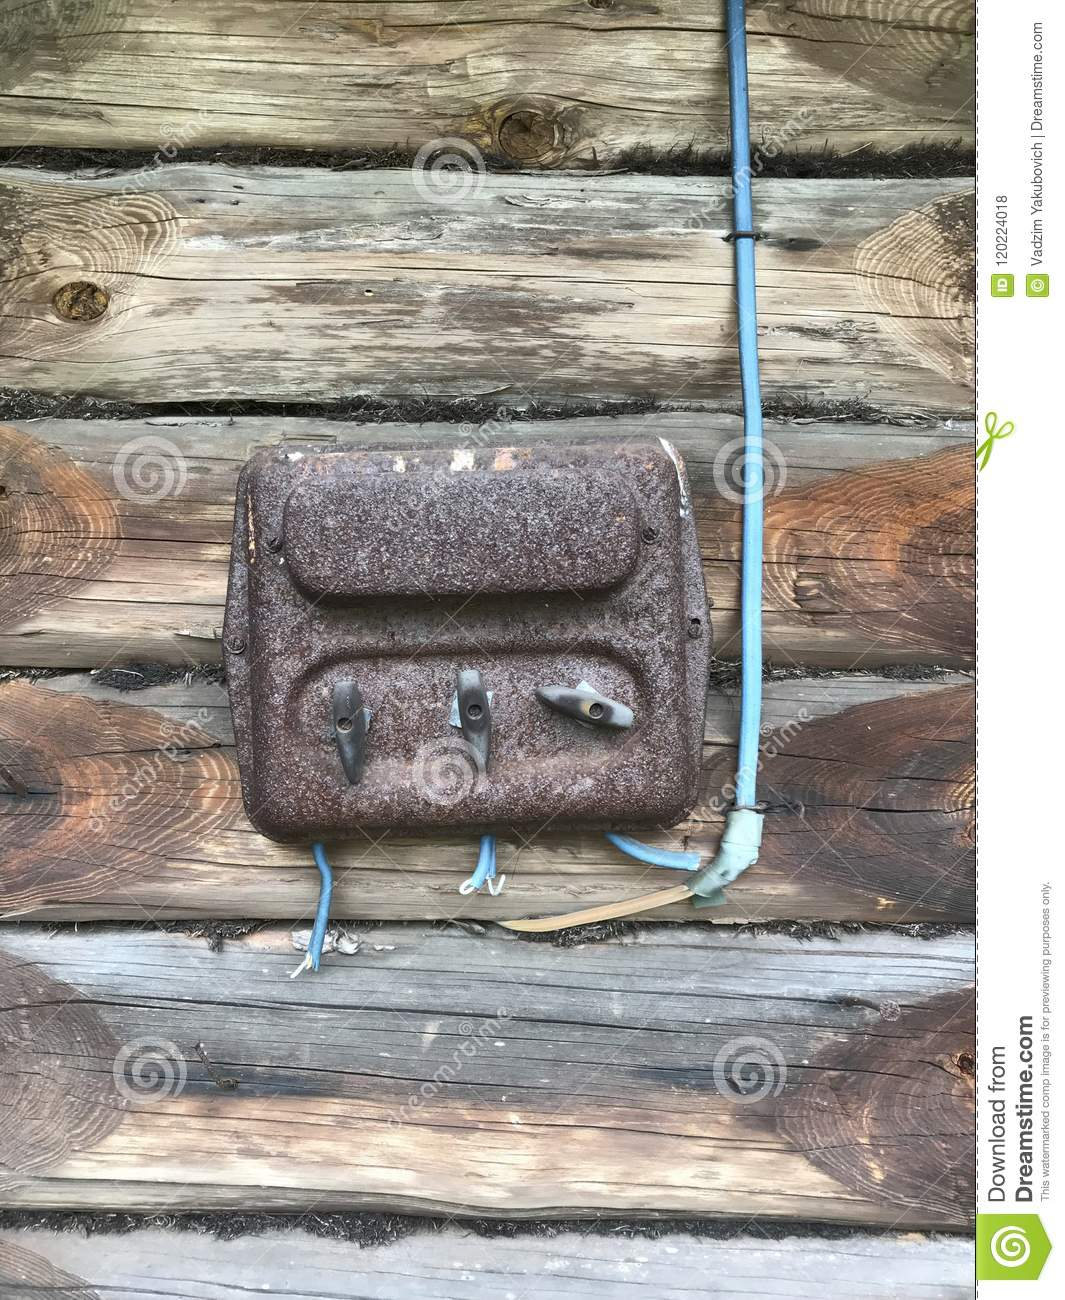 hight resolution of an old rust covered electric flap on the wall of a wooden shed electrical